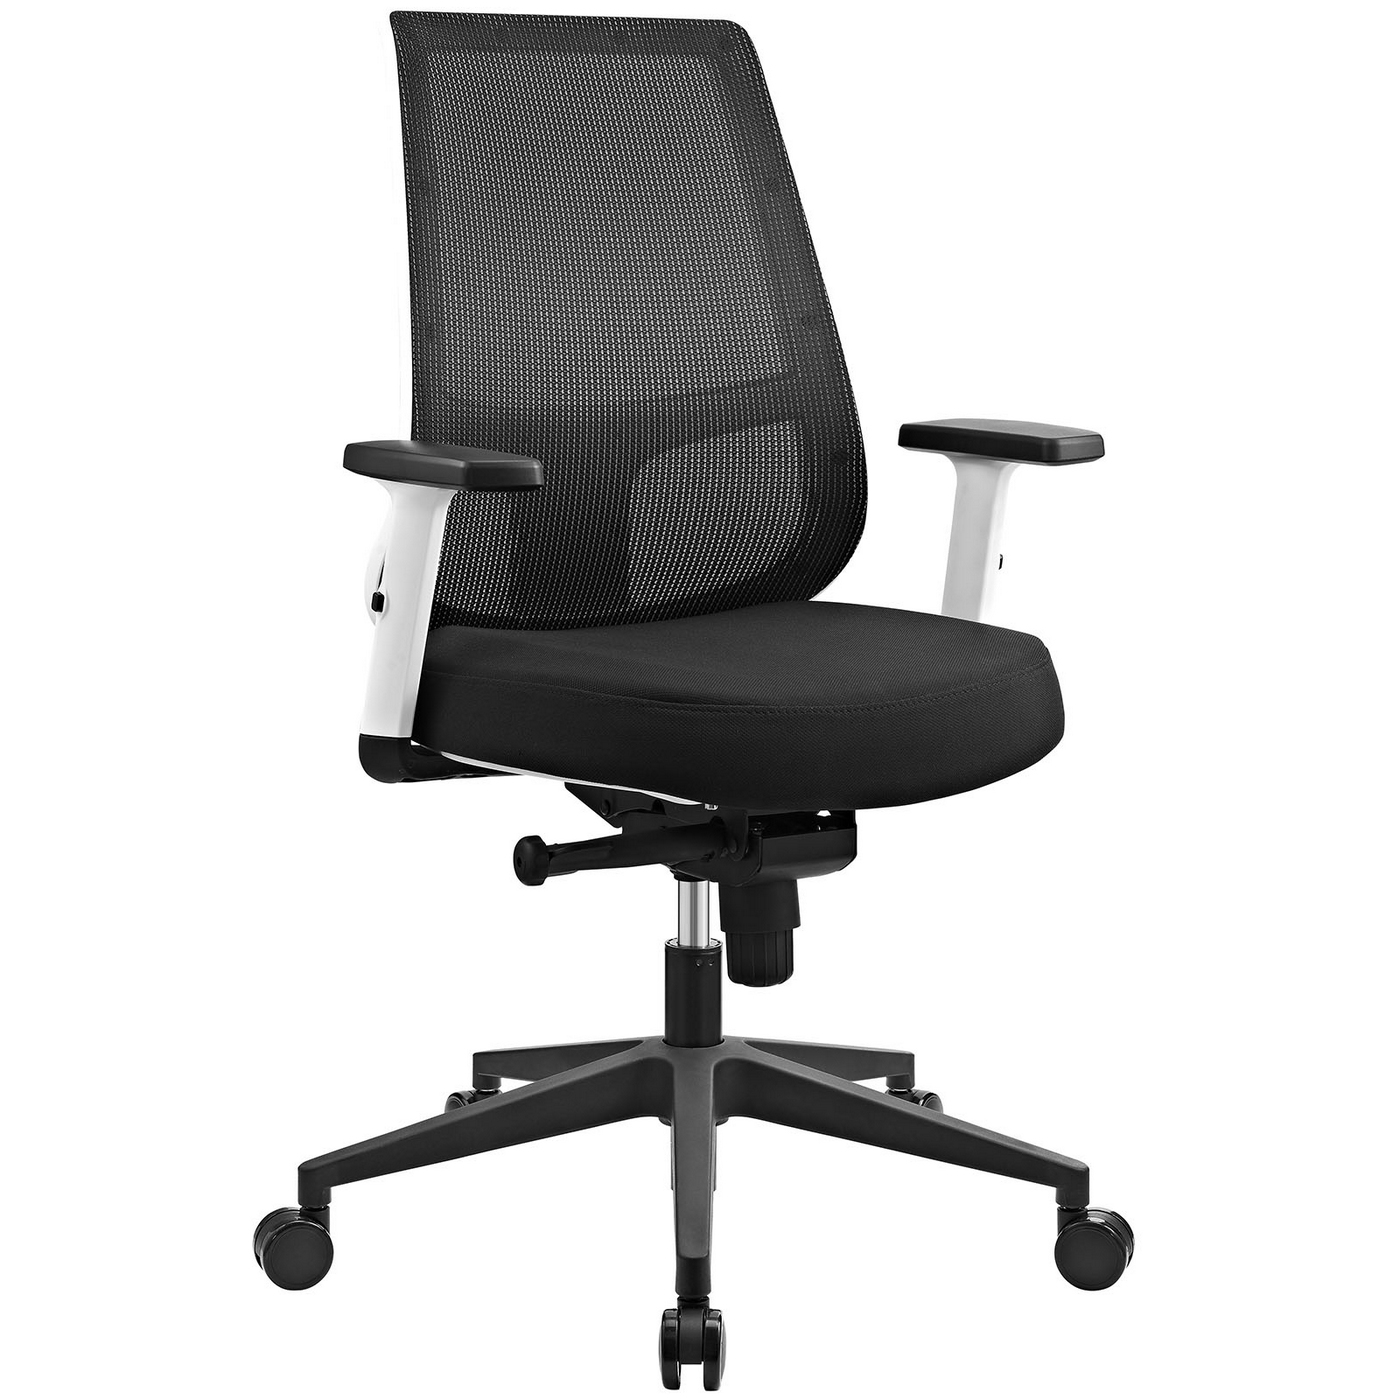 Office Chairs White Pump Ergonomic Mesh Back Office Chair W White Frame